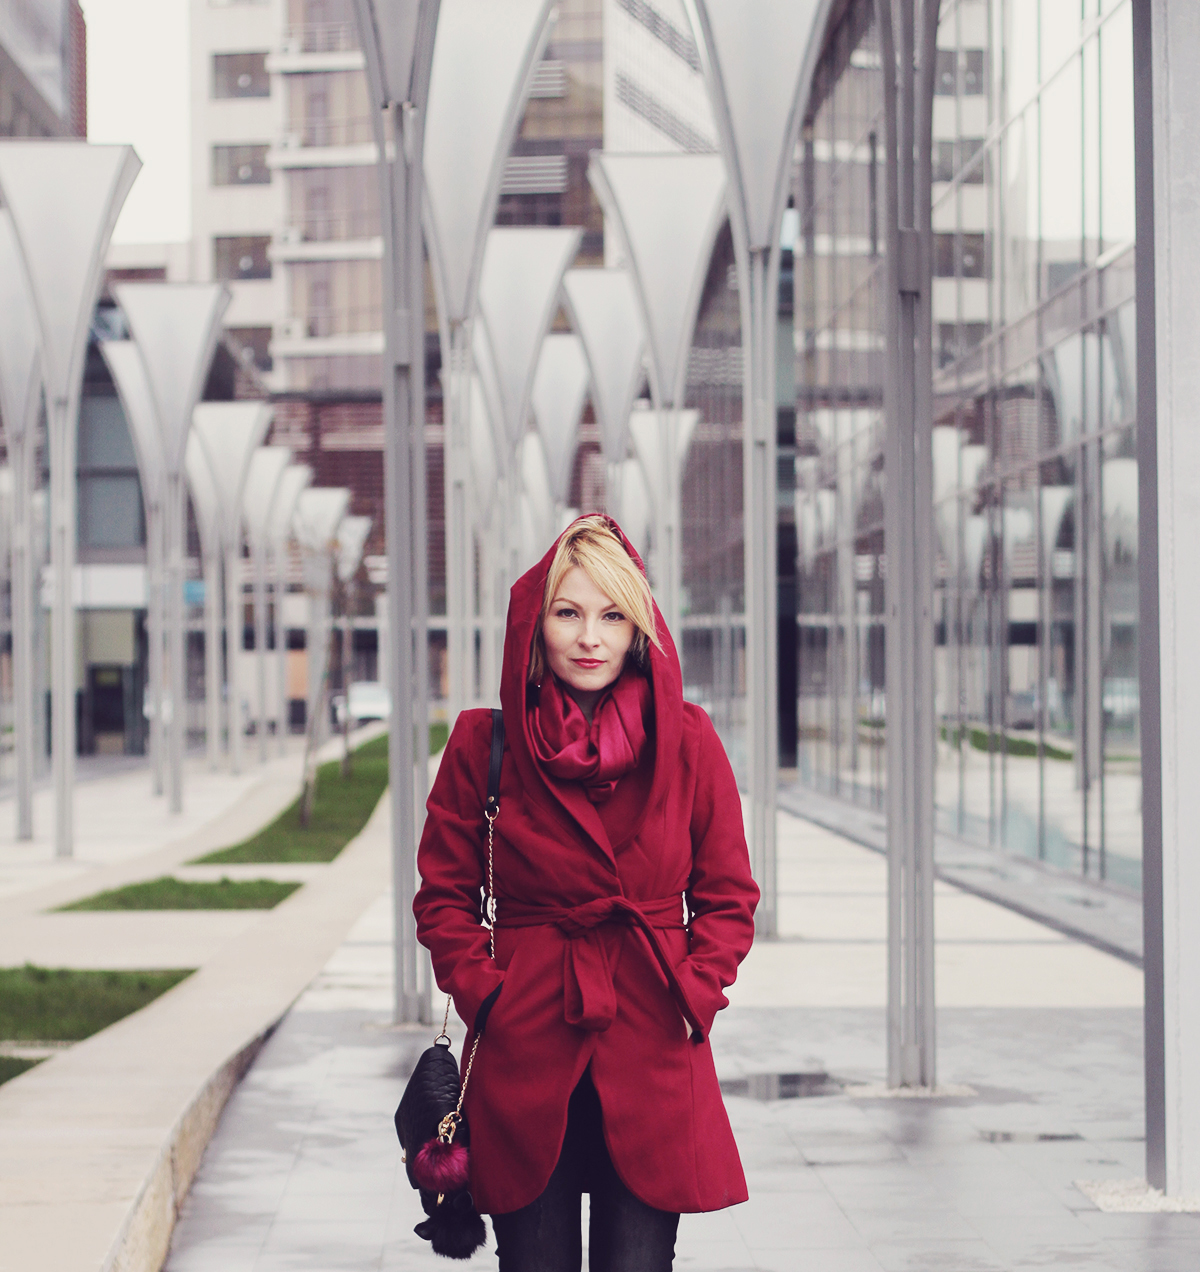 the burgundy coat and scarf